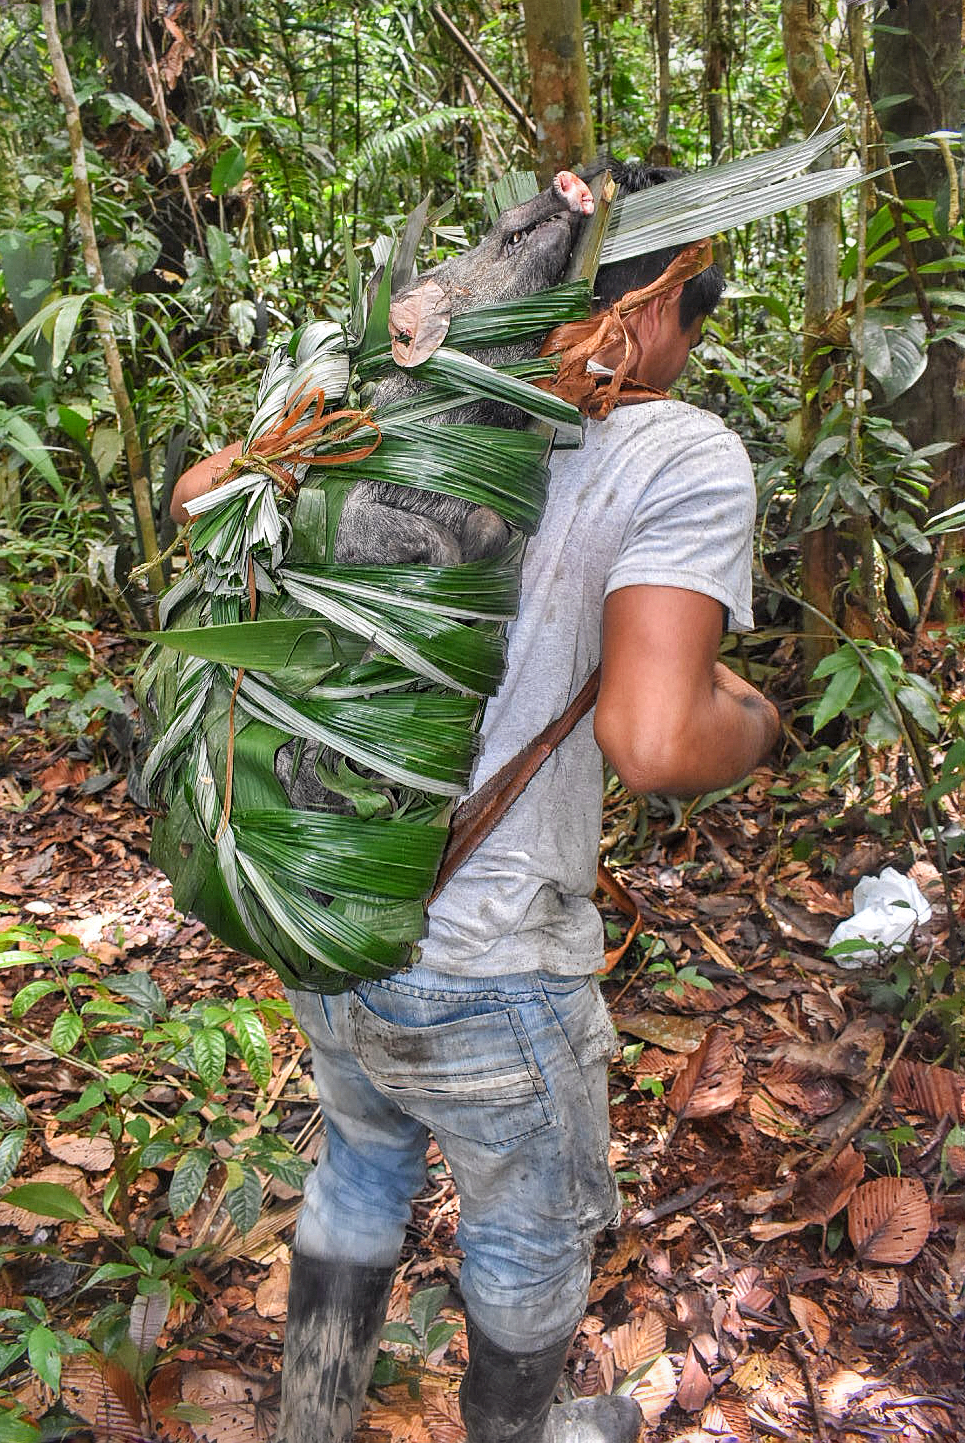 Fransisco, with the boar in his hand crafted backpack. Image by Scott Haber